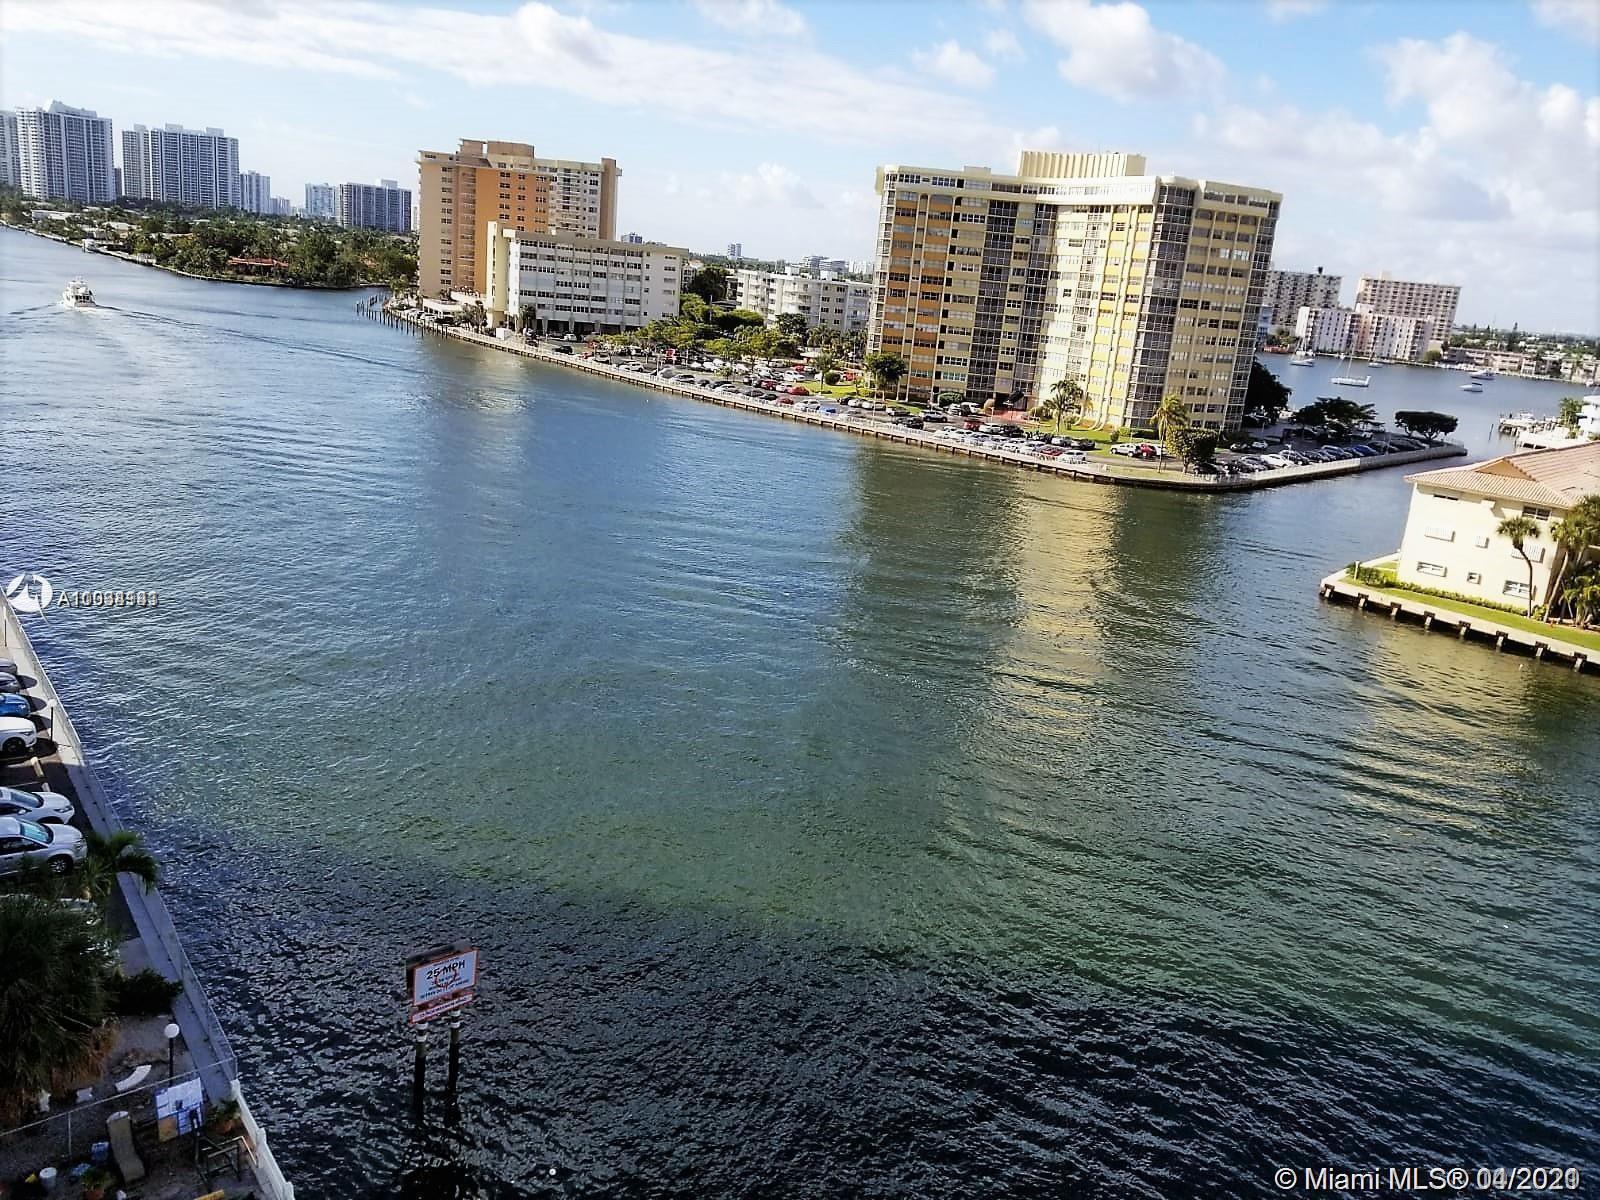 STUNNING INTRACOASTAL VIEWS FROM THIS BEAUTIFUL TURN KEY APARTMENT, FULLY REMODELED. VERY SPACIOUS U